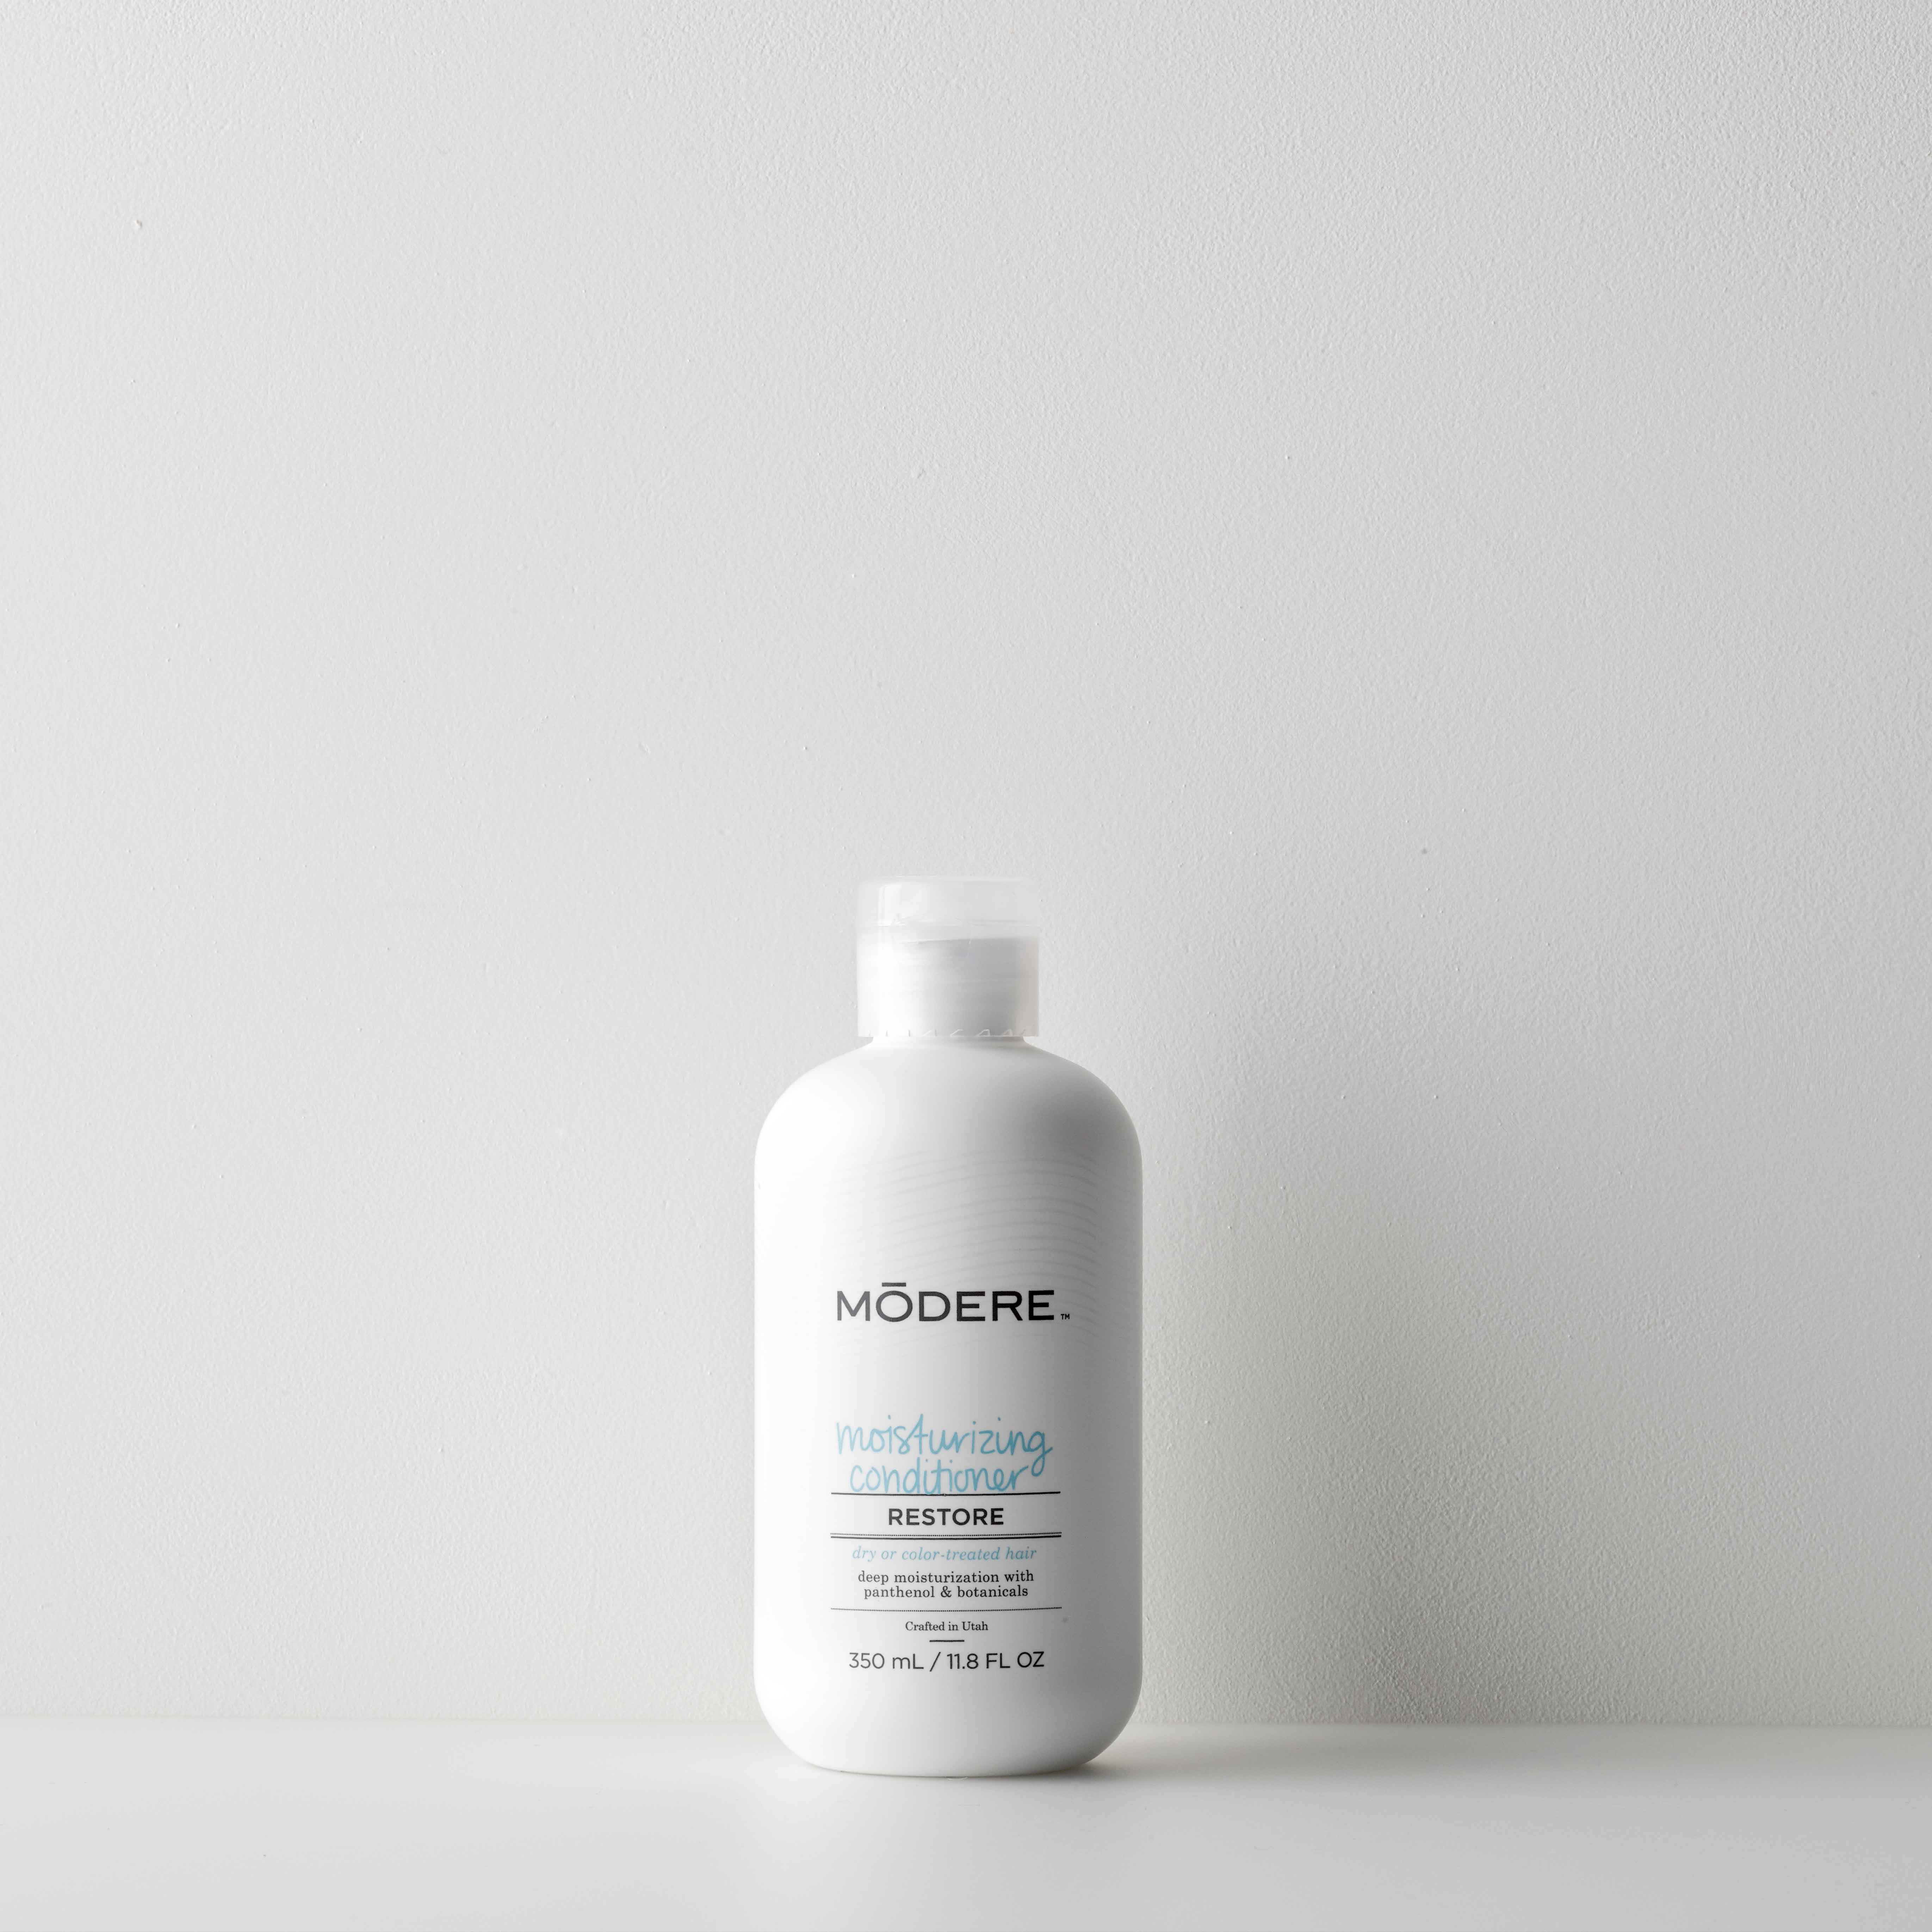 Hair care conditioner  on a table top with soft lighting